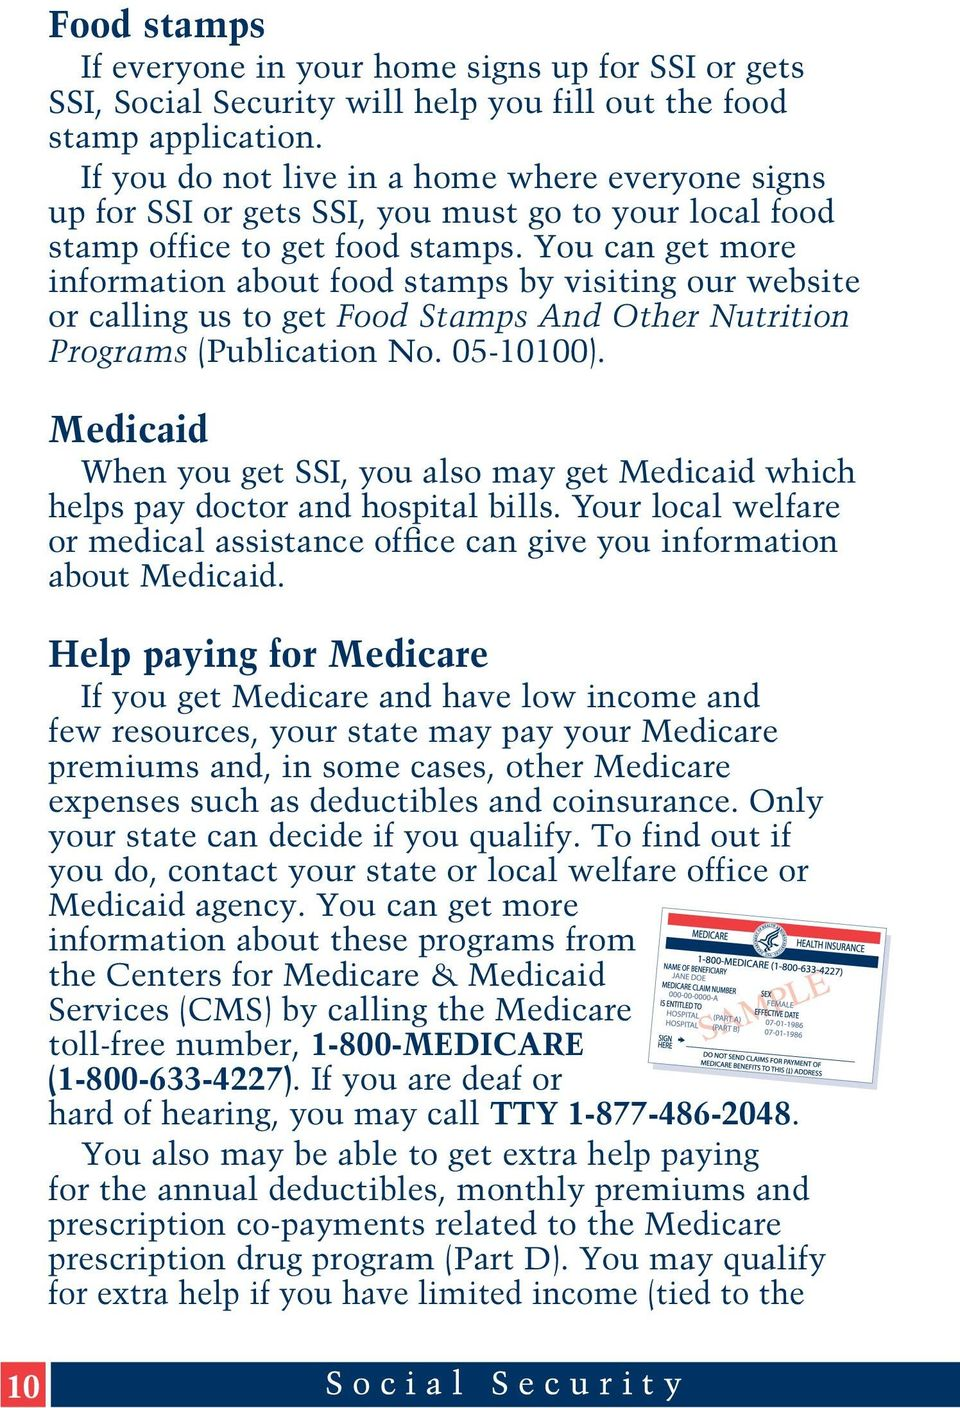 You can get more information about food stamps by visiting our website or calling us to get Food Stamps And Other Nutrition Programs (Publication No. 05-10100).